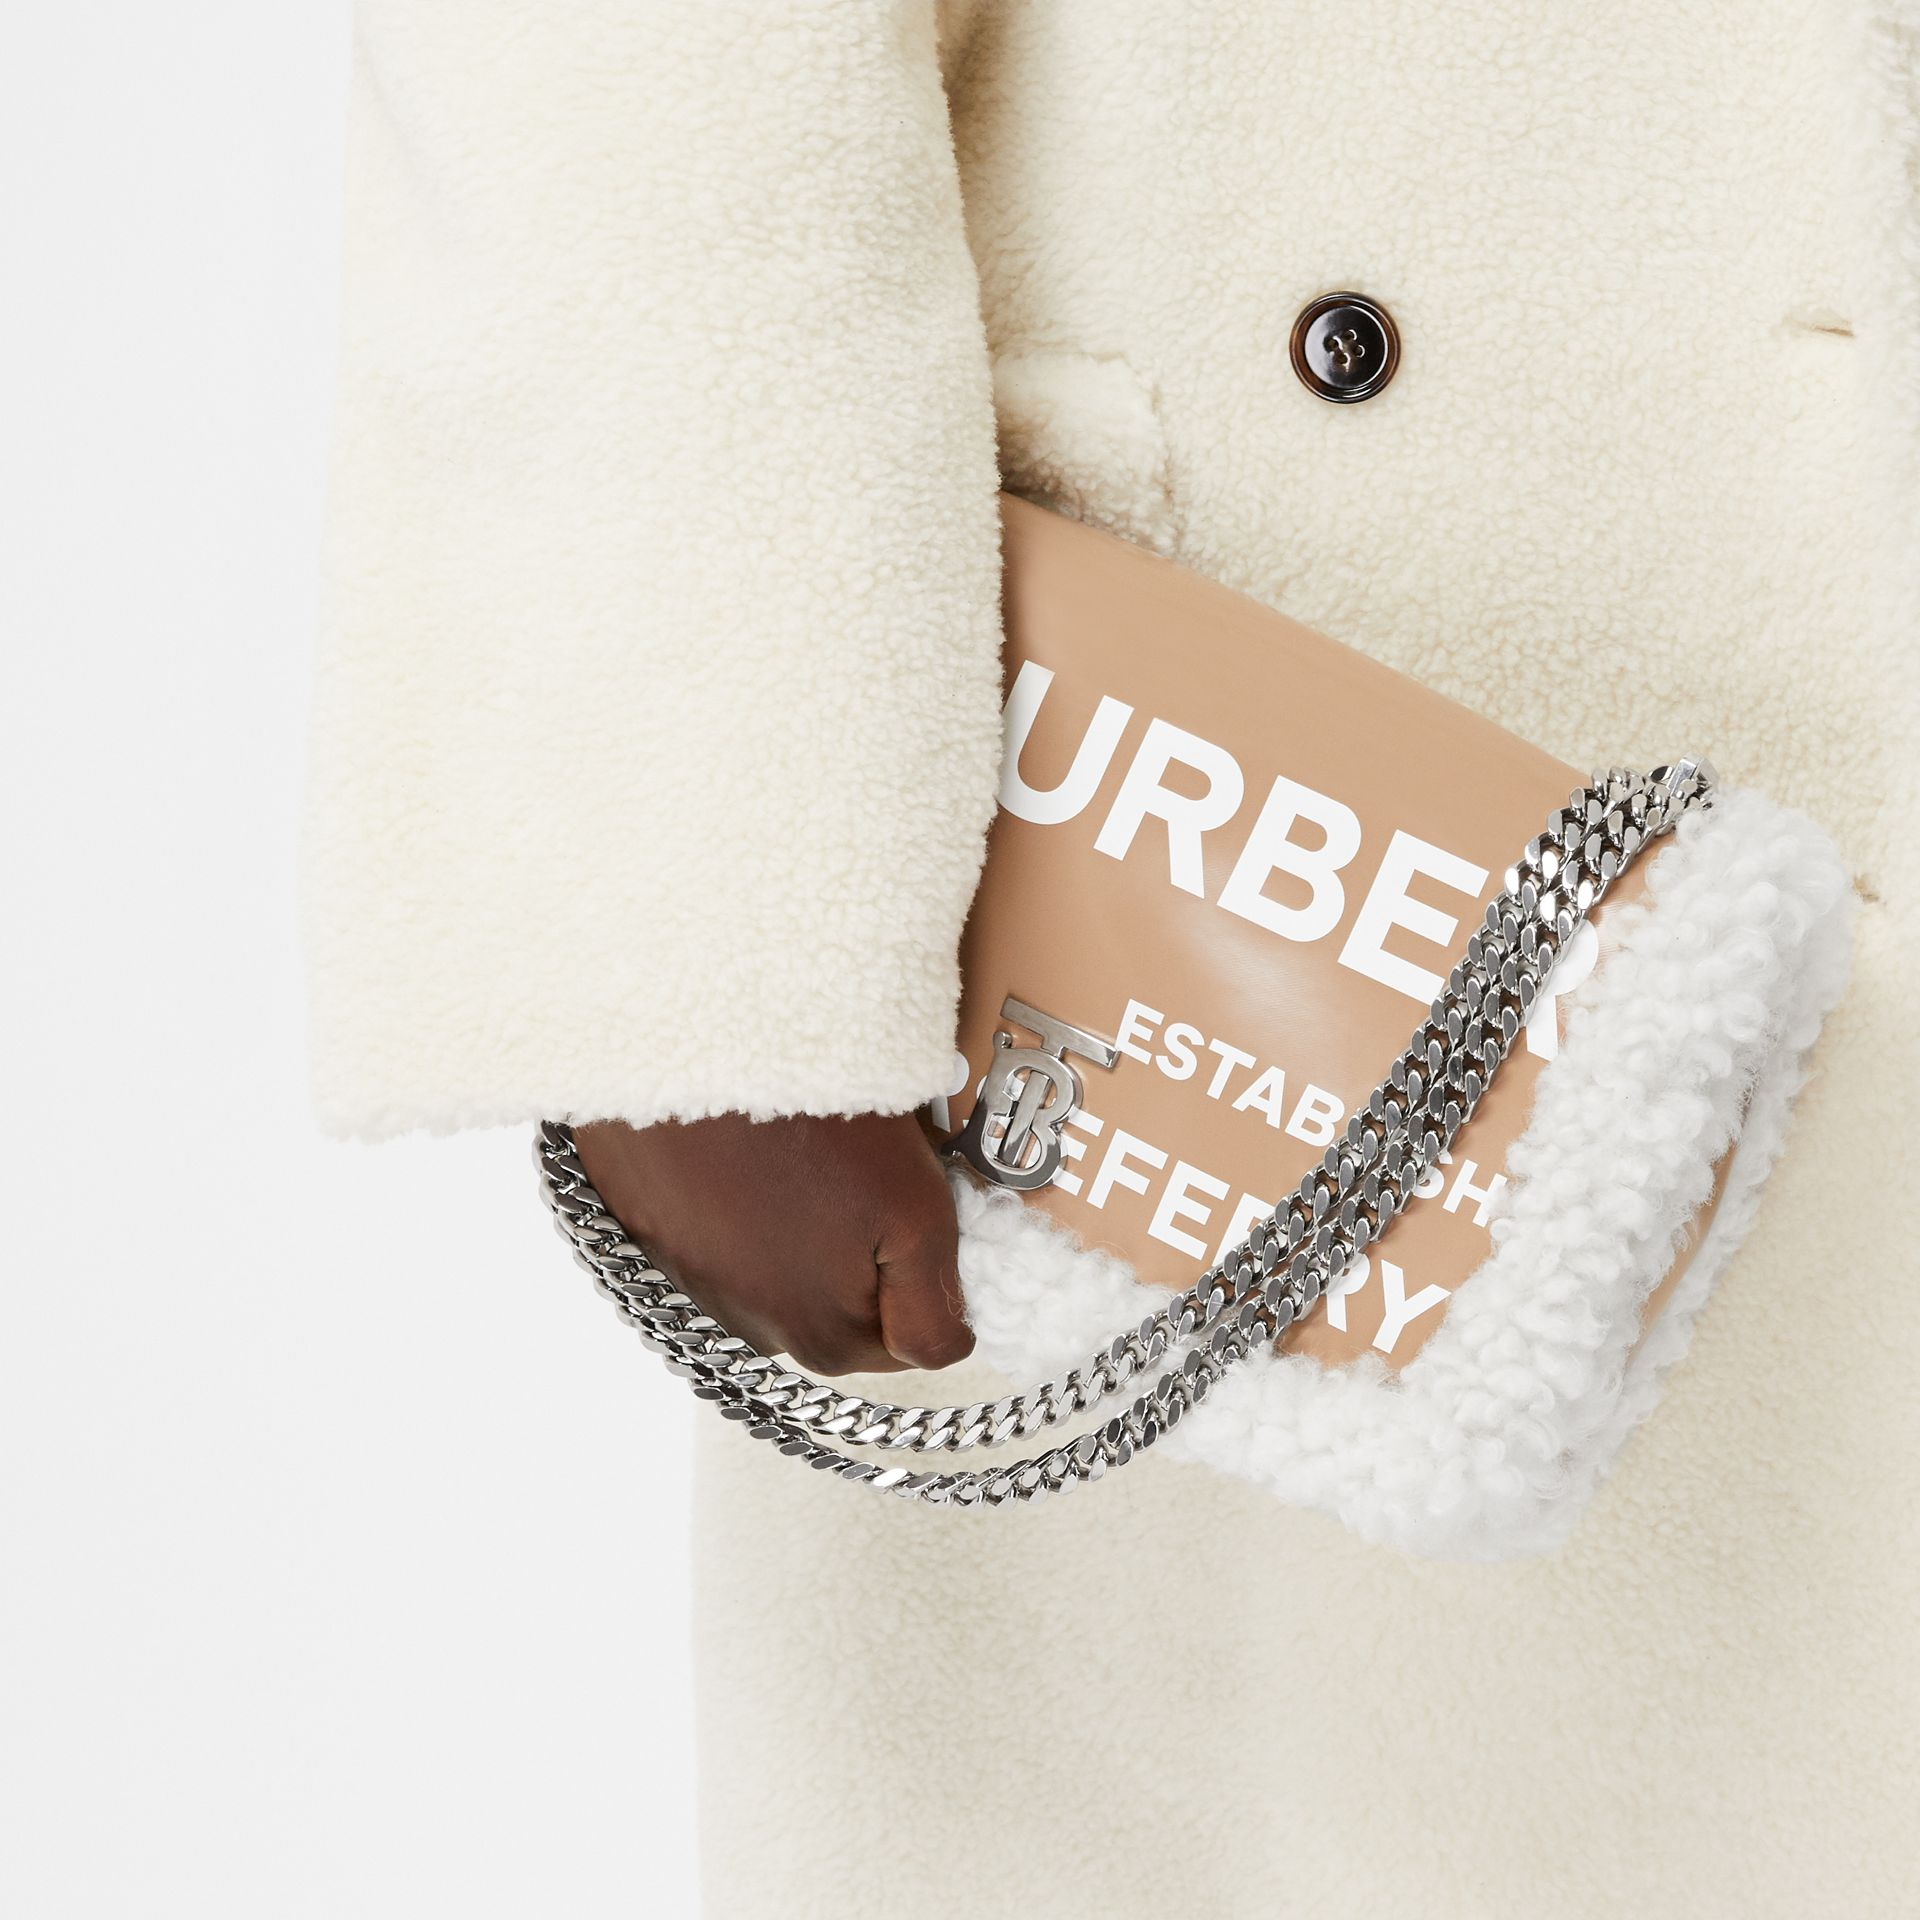 Medium Coated Canvas and Shearling Lola Bag in Camel - Women | Burberry Hong Kong S.A.R. - gallery image 8